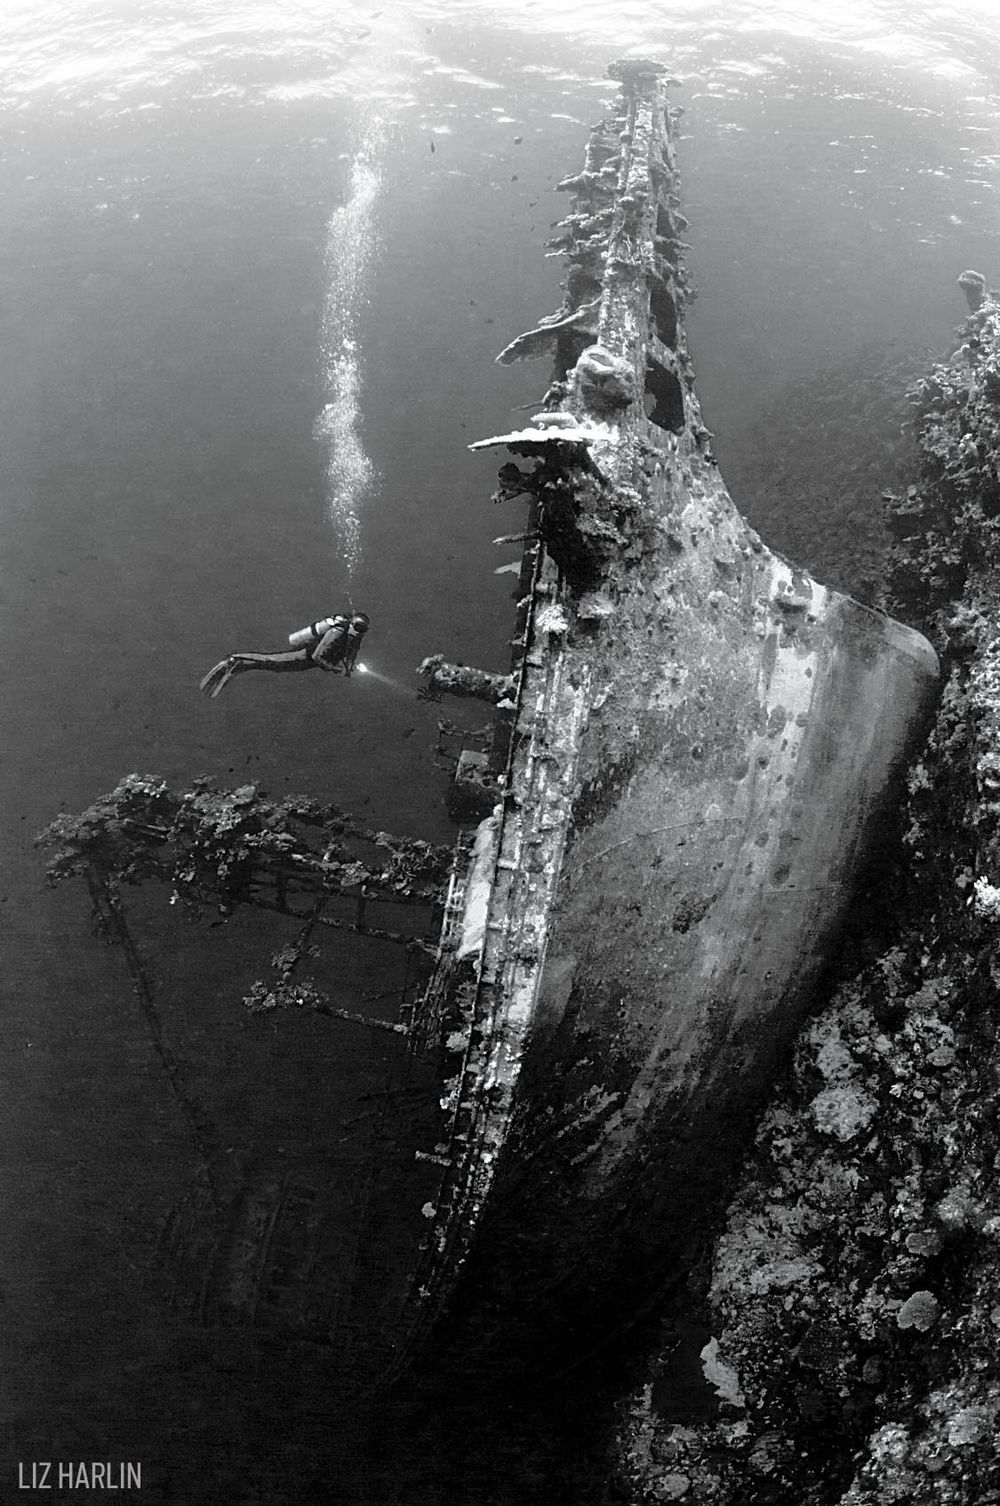 Taiyo Shipwreck Black White Underwater Photography Diving - Amazing black white underwater photography